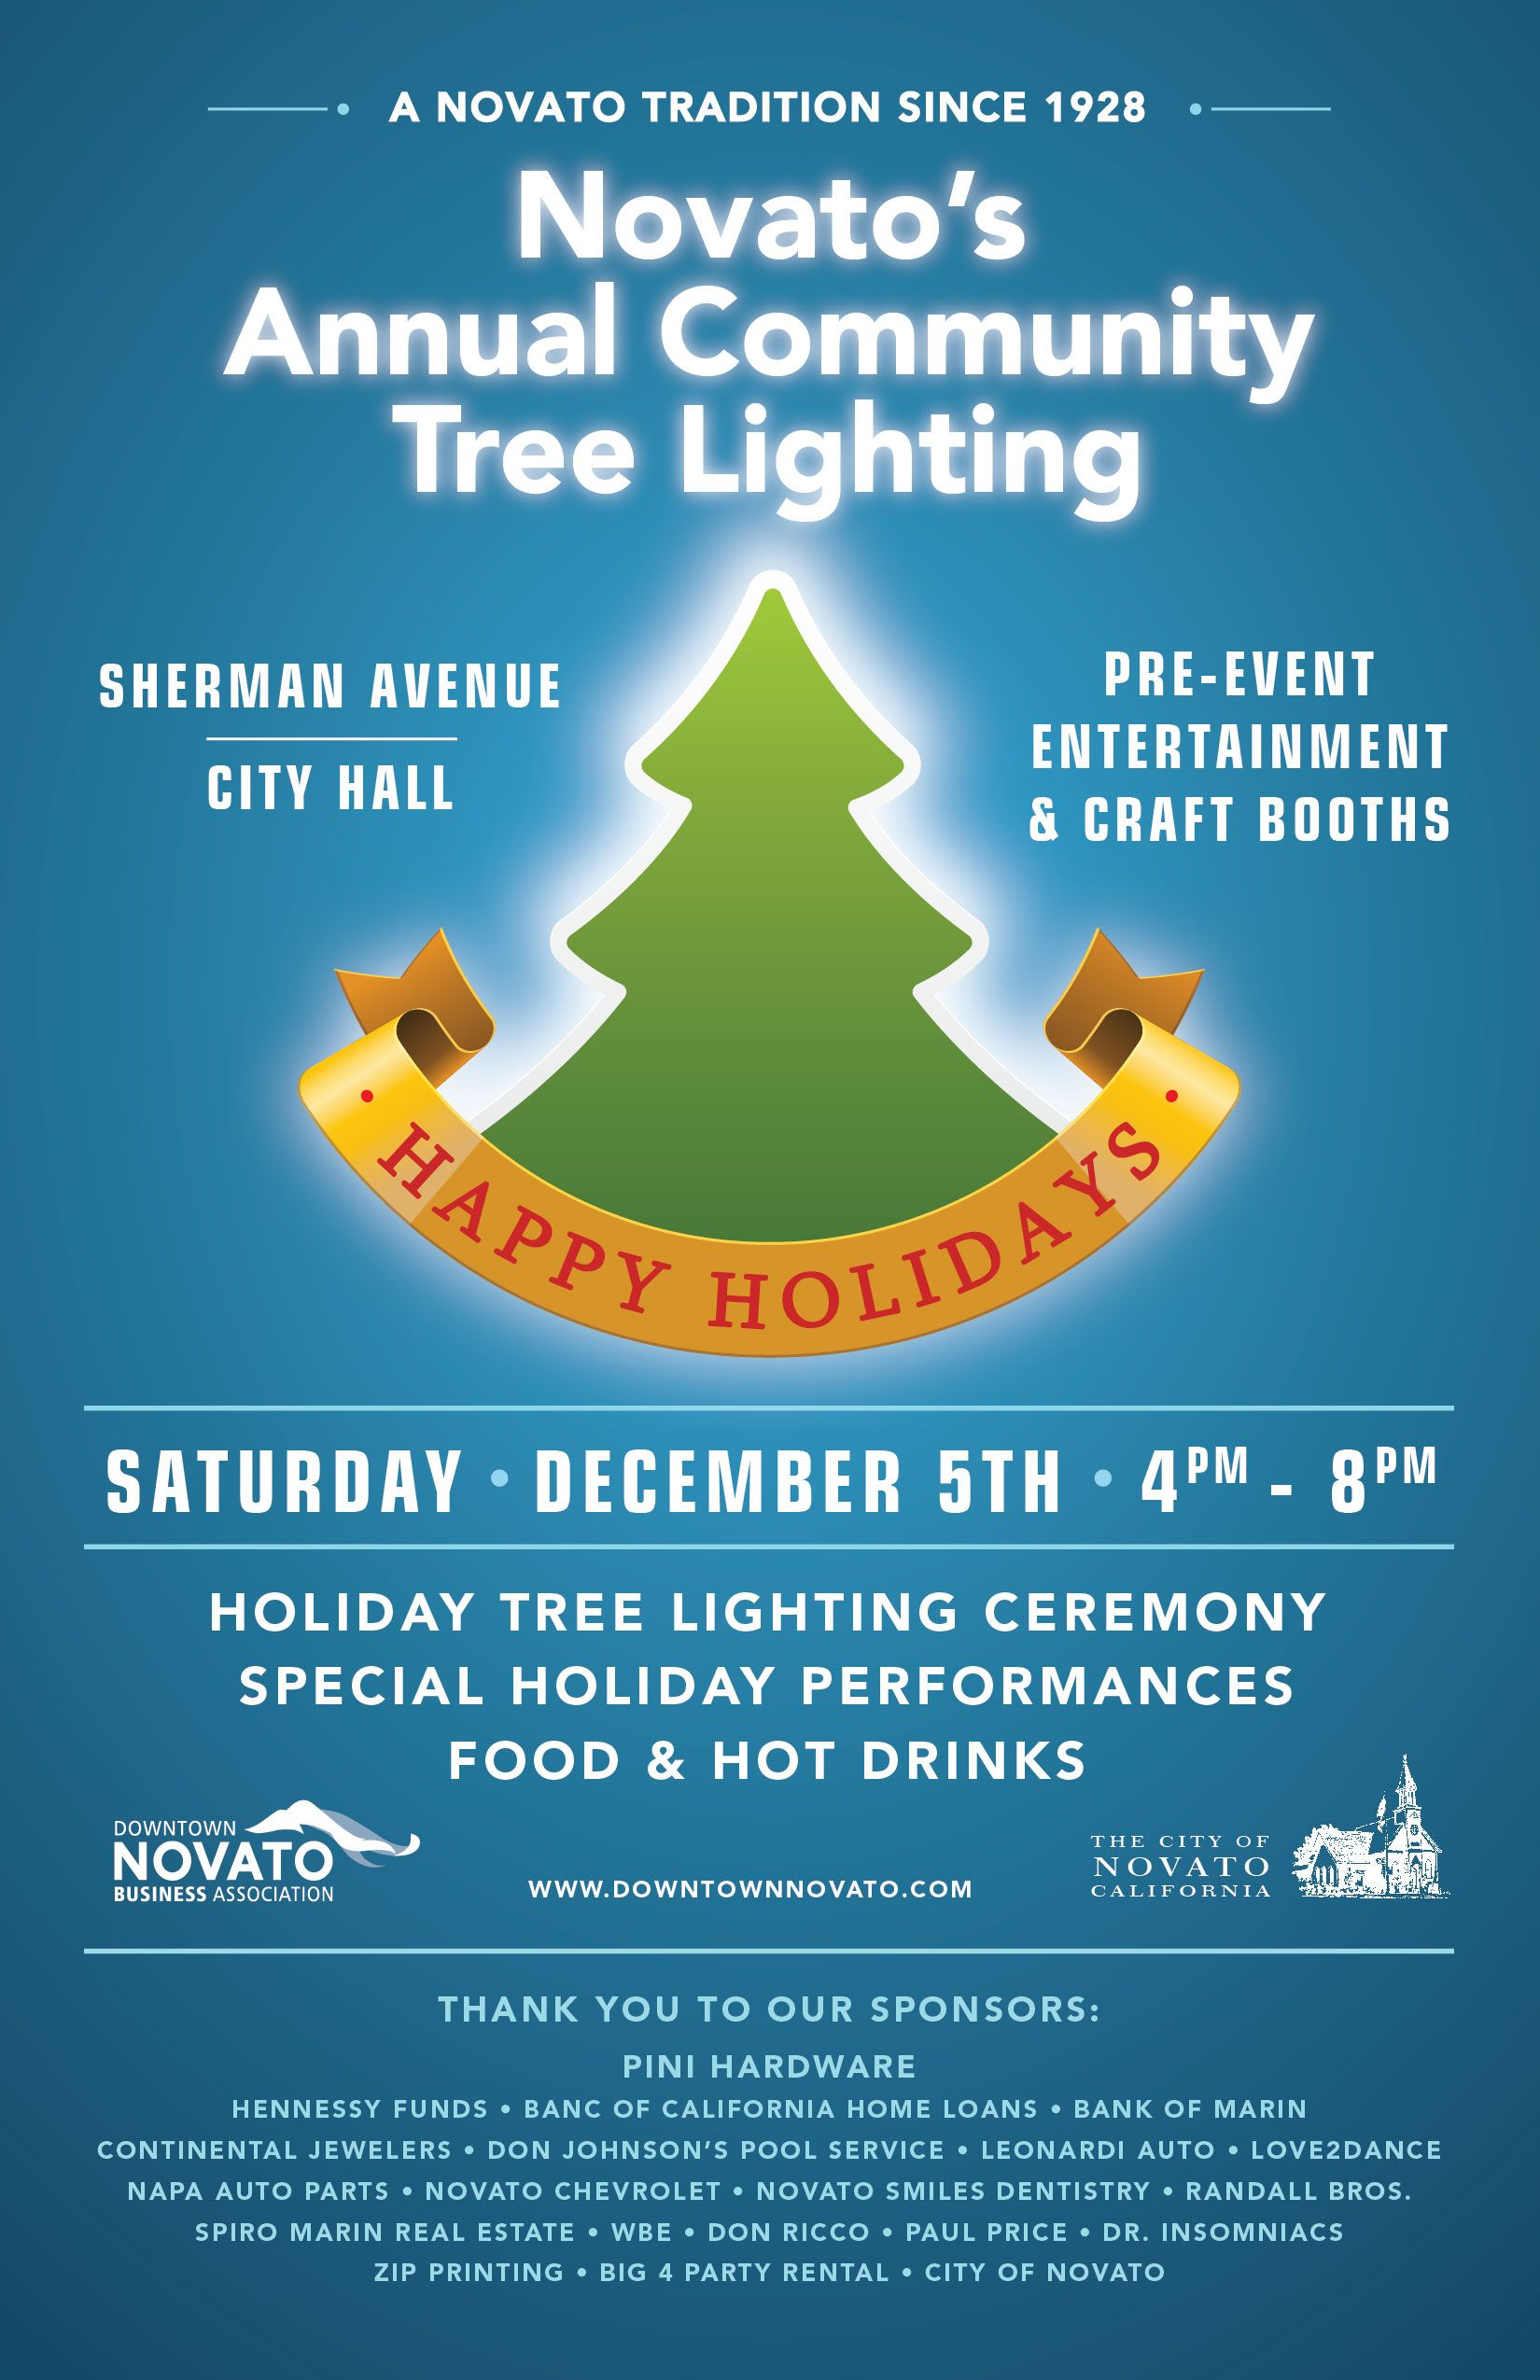 A Novato tradition! Holiday specials, Event entertainment